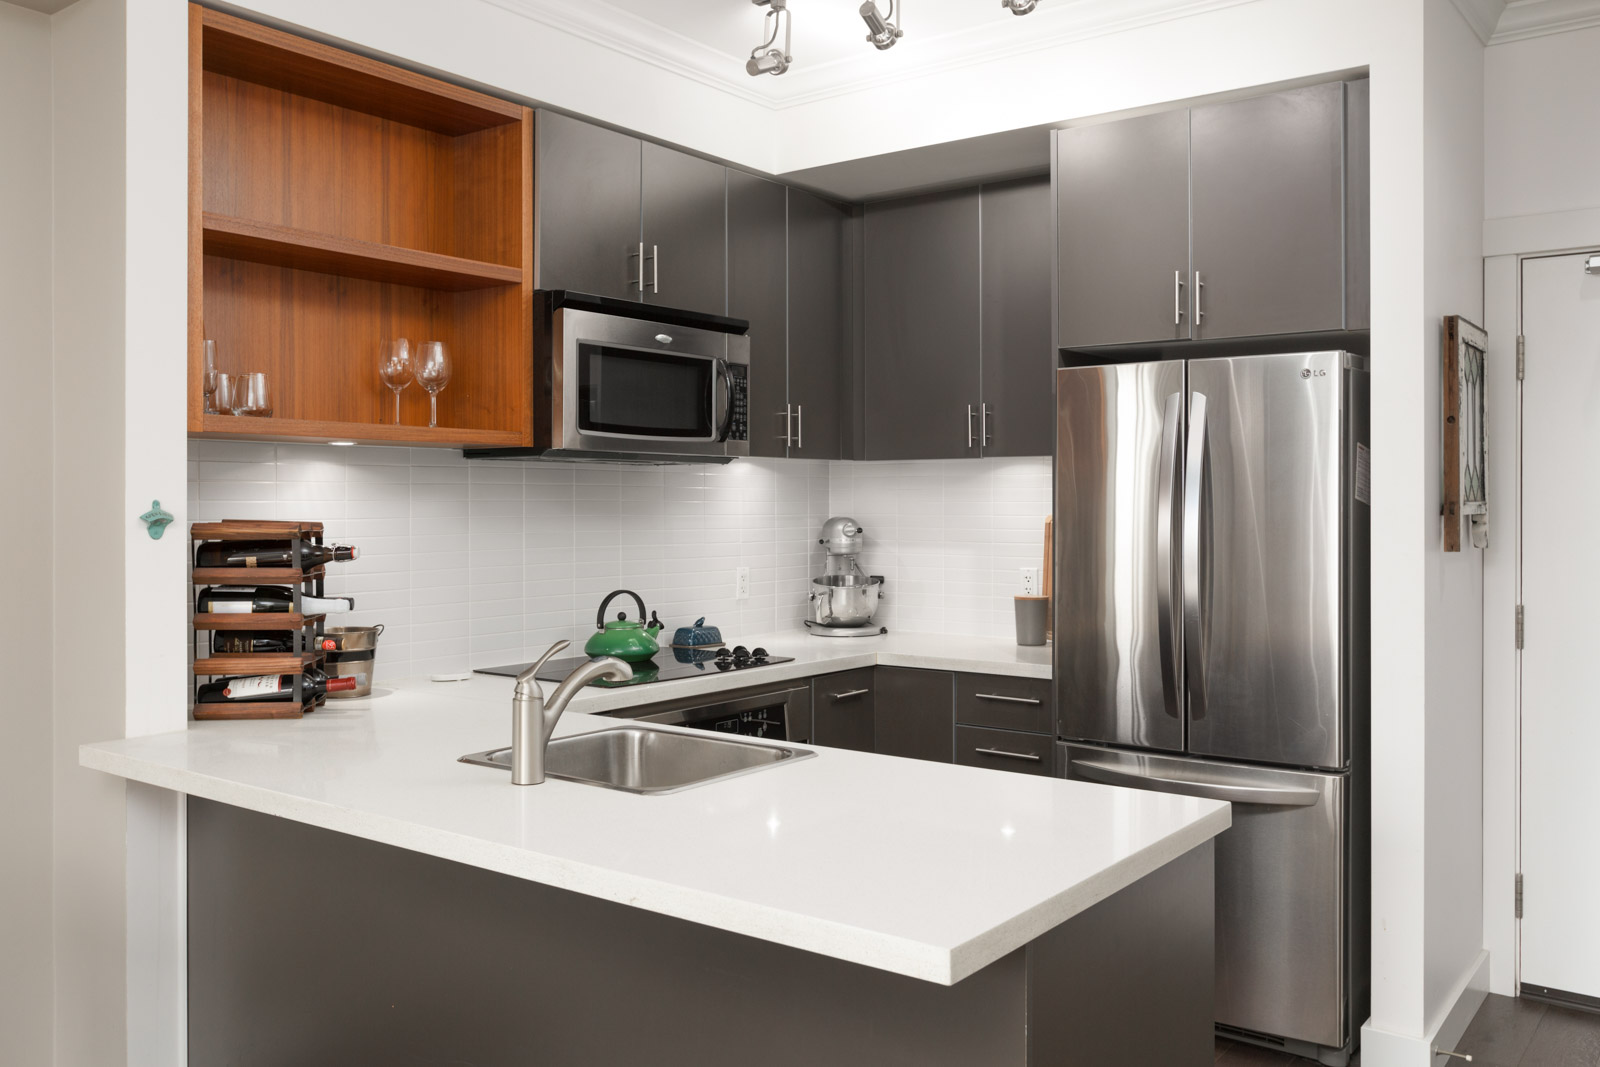 Modern kitchen with stainless steel fridge and microwave and granite countertops with storage cabinets in a rental condo in East Vancouver offered by Birds Nest Properties